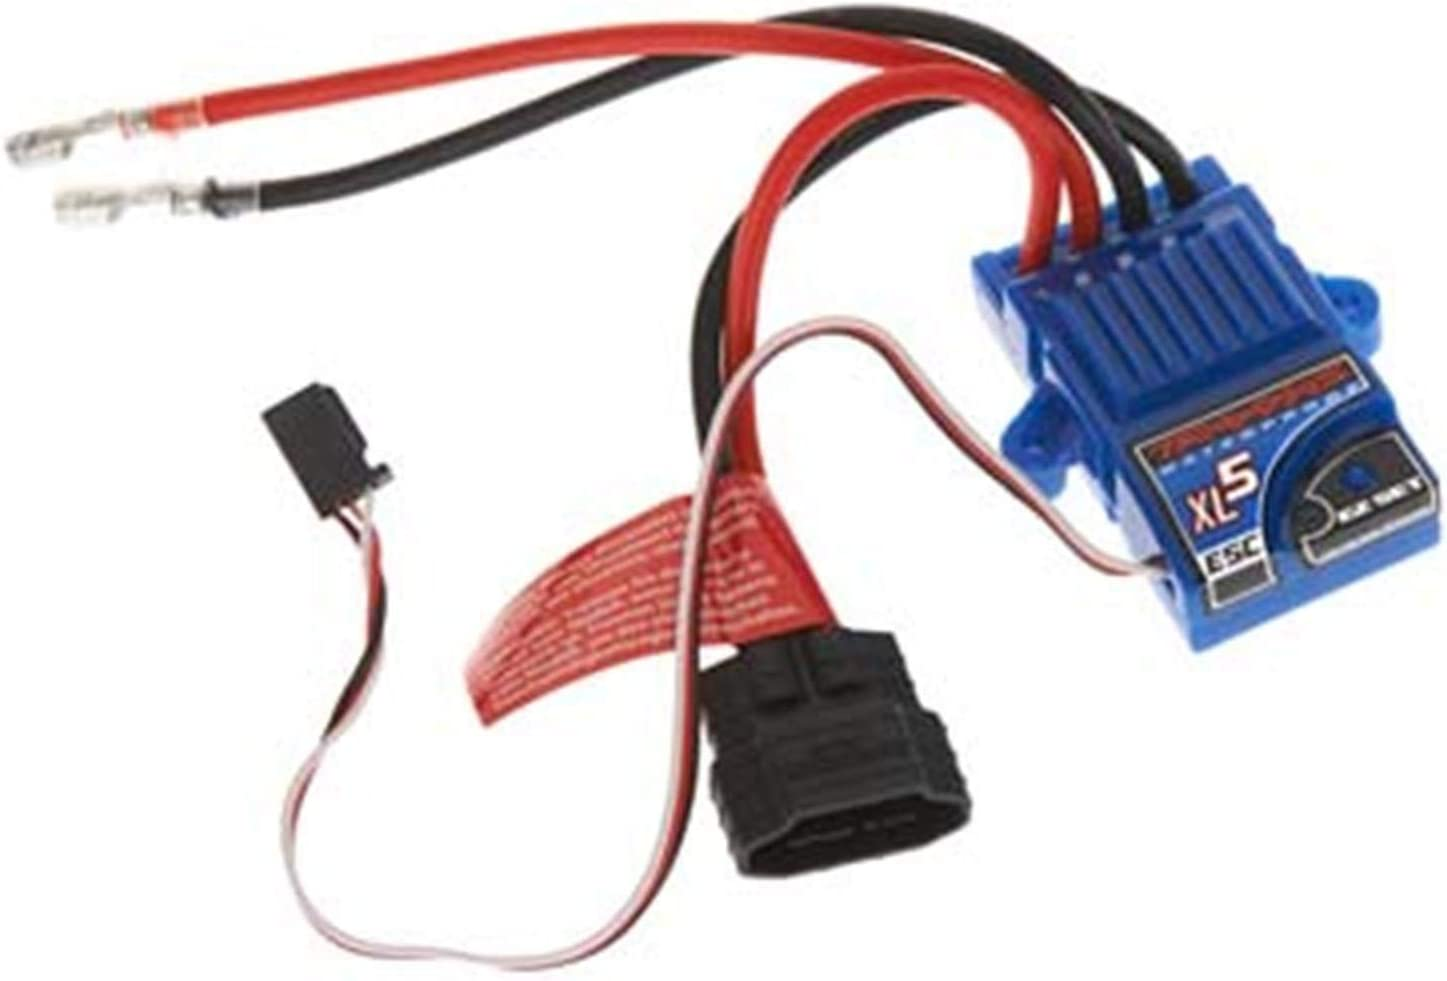 Traxxas Bandit XL-5 Free shipping New item anywhere in the nation iD LOW PROFILE WITH WATERPROOF ESC LVD